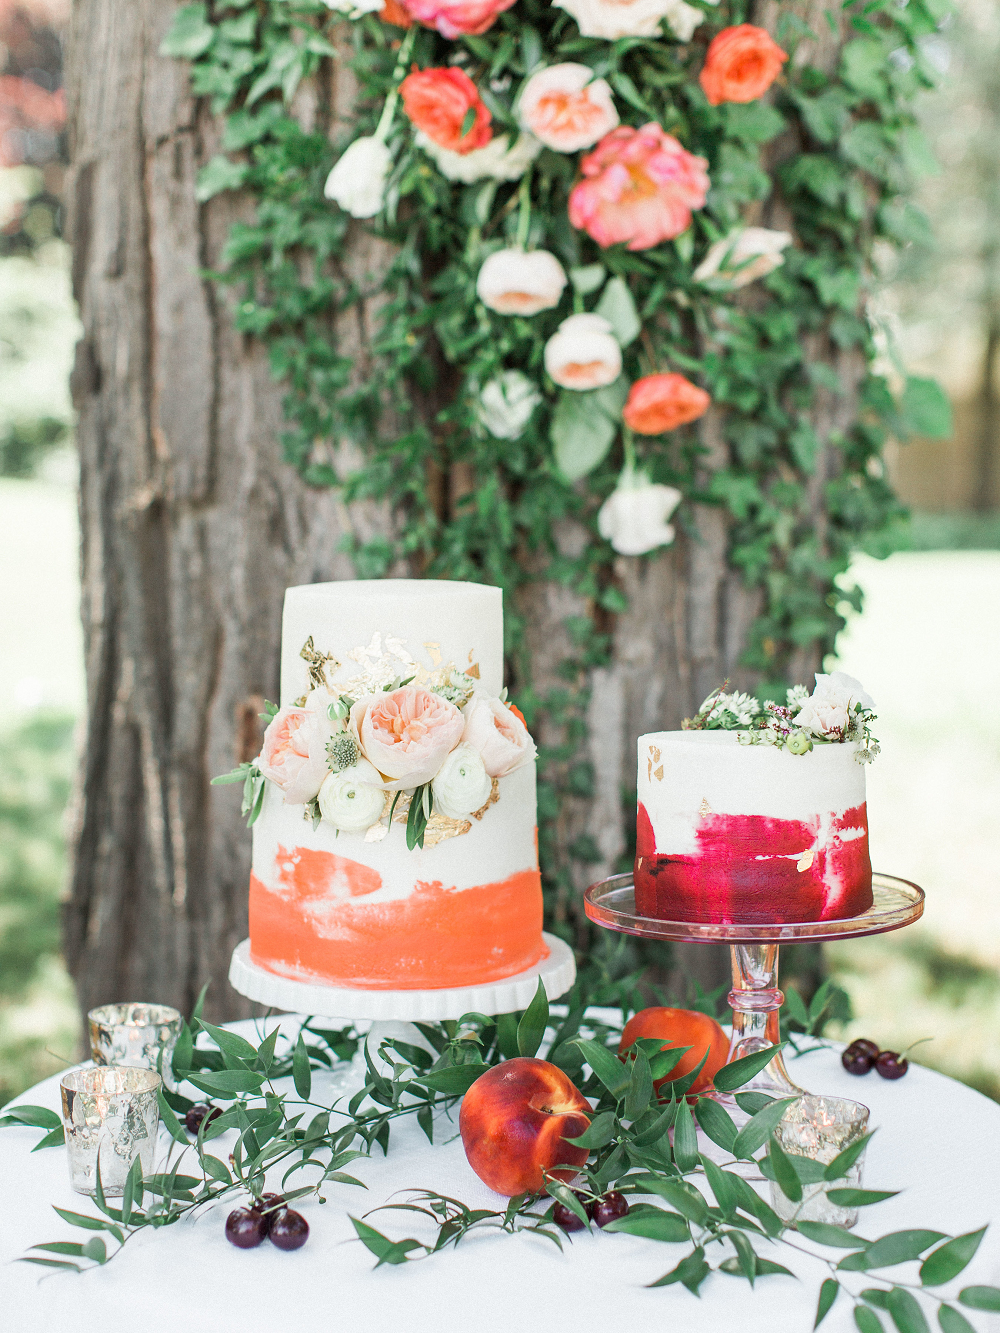 Whimsical Summer Wedding Styled Shoot at Henderson Castle Featured in WeddingDay Magazine Peach Wedding Cake